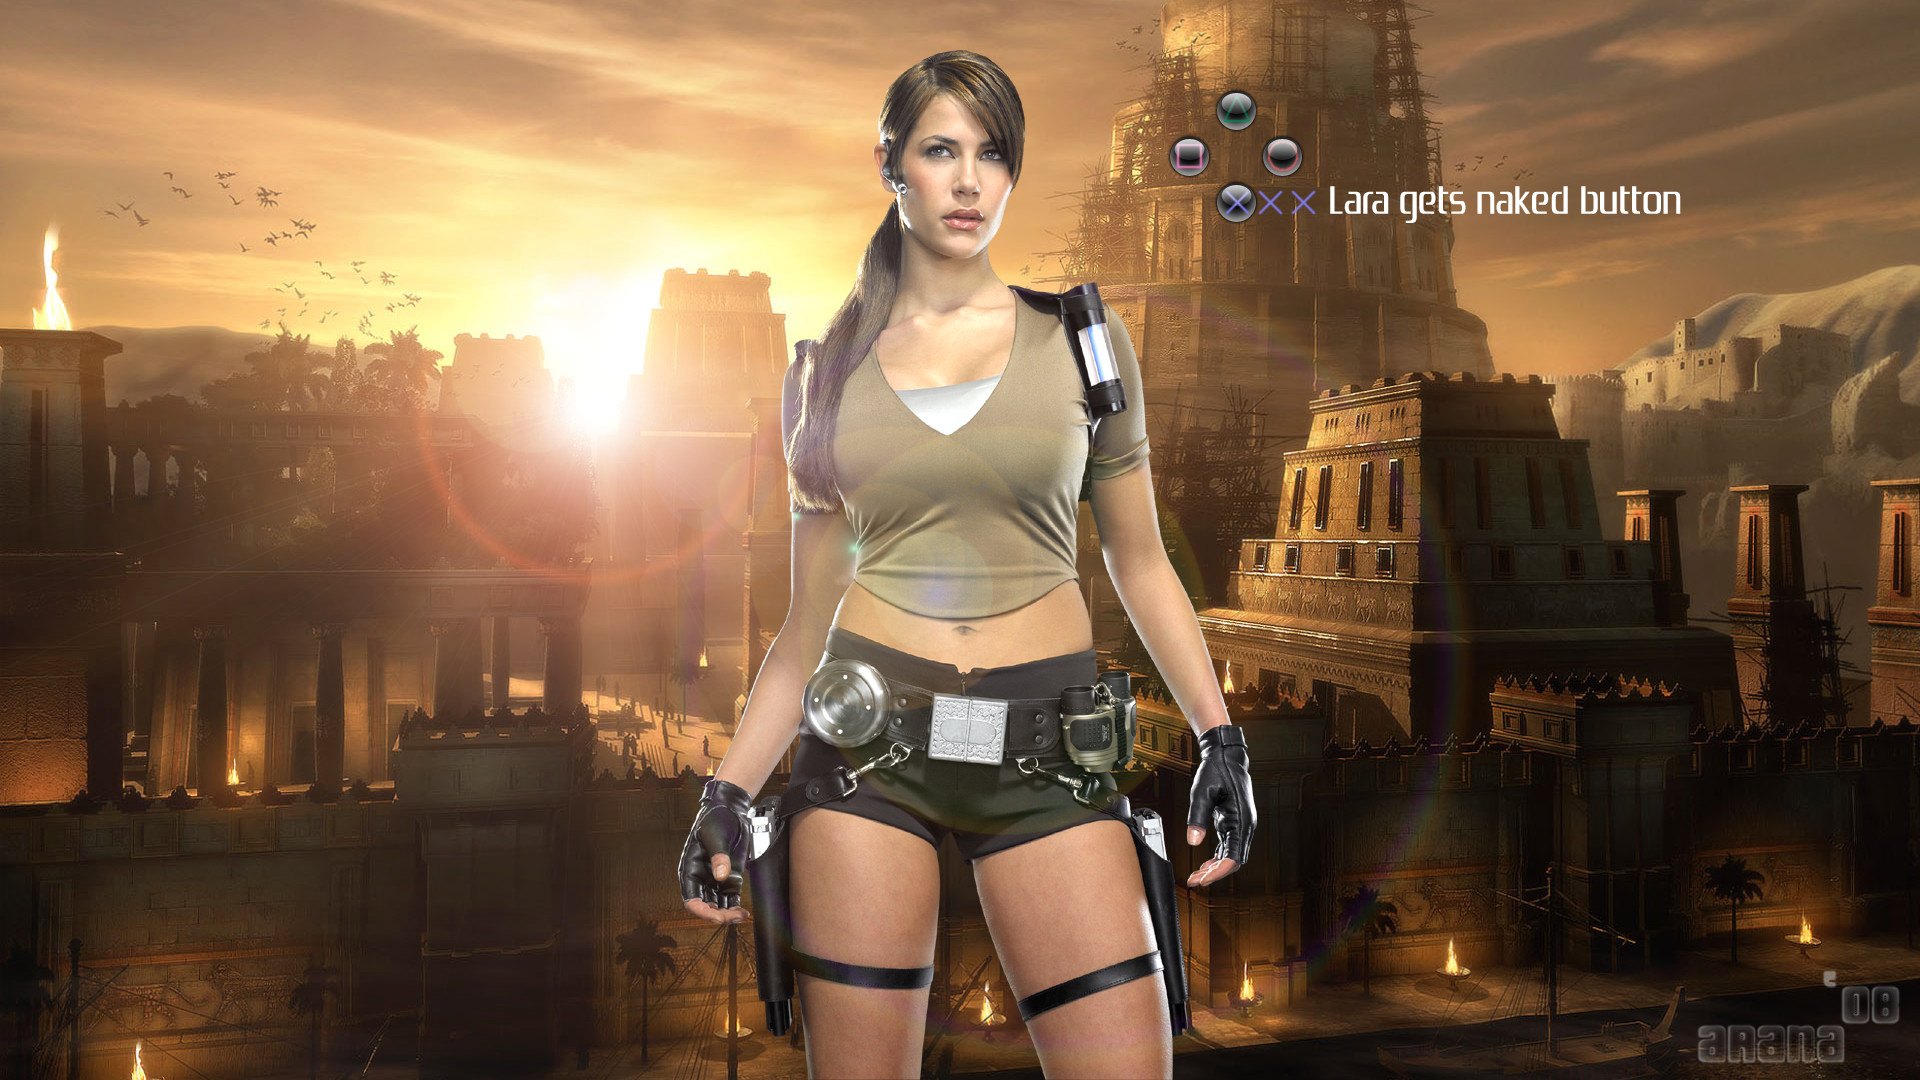 Lara Croft HDTV 1080p Wallpapers HD Wallpapers 1920x1080